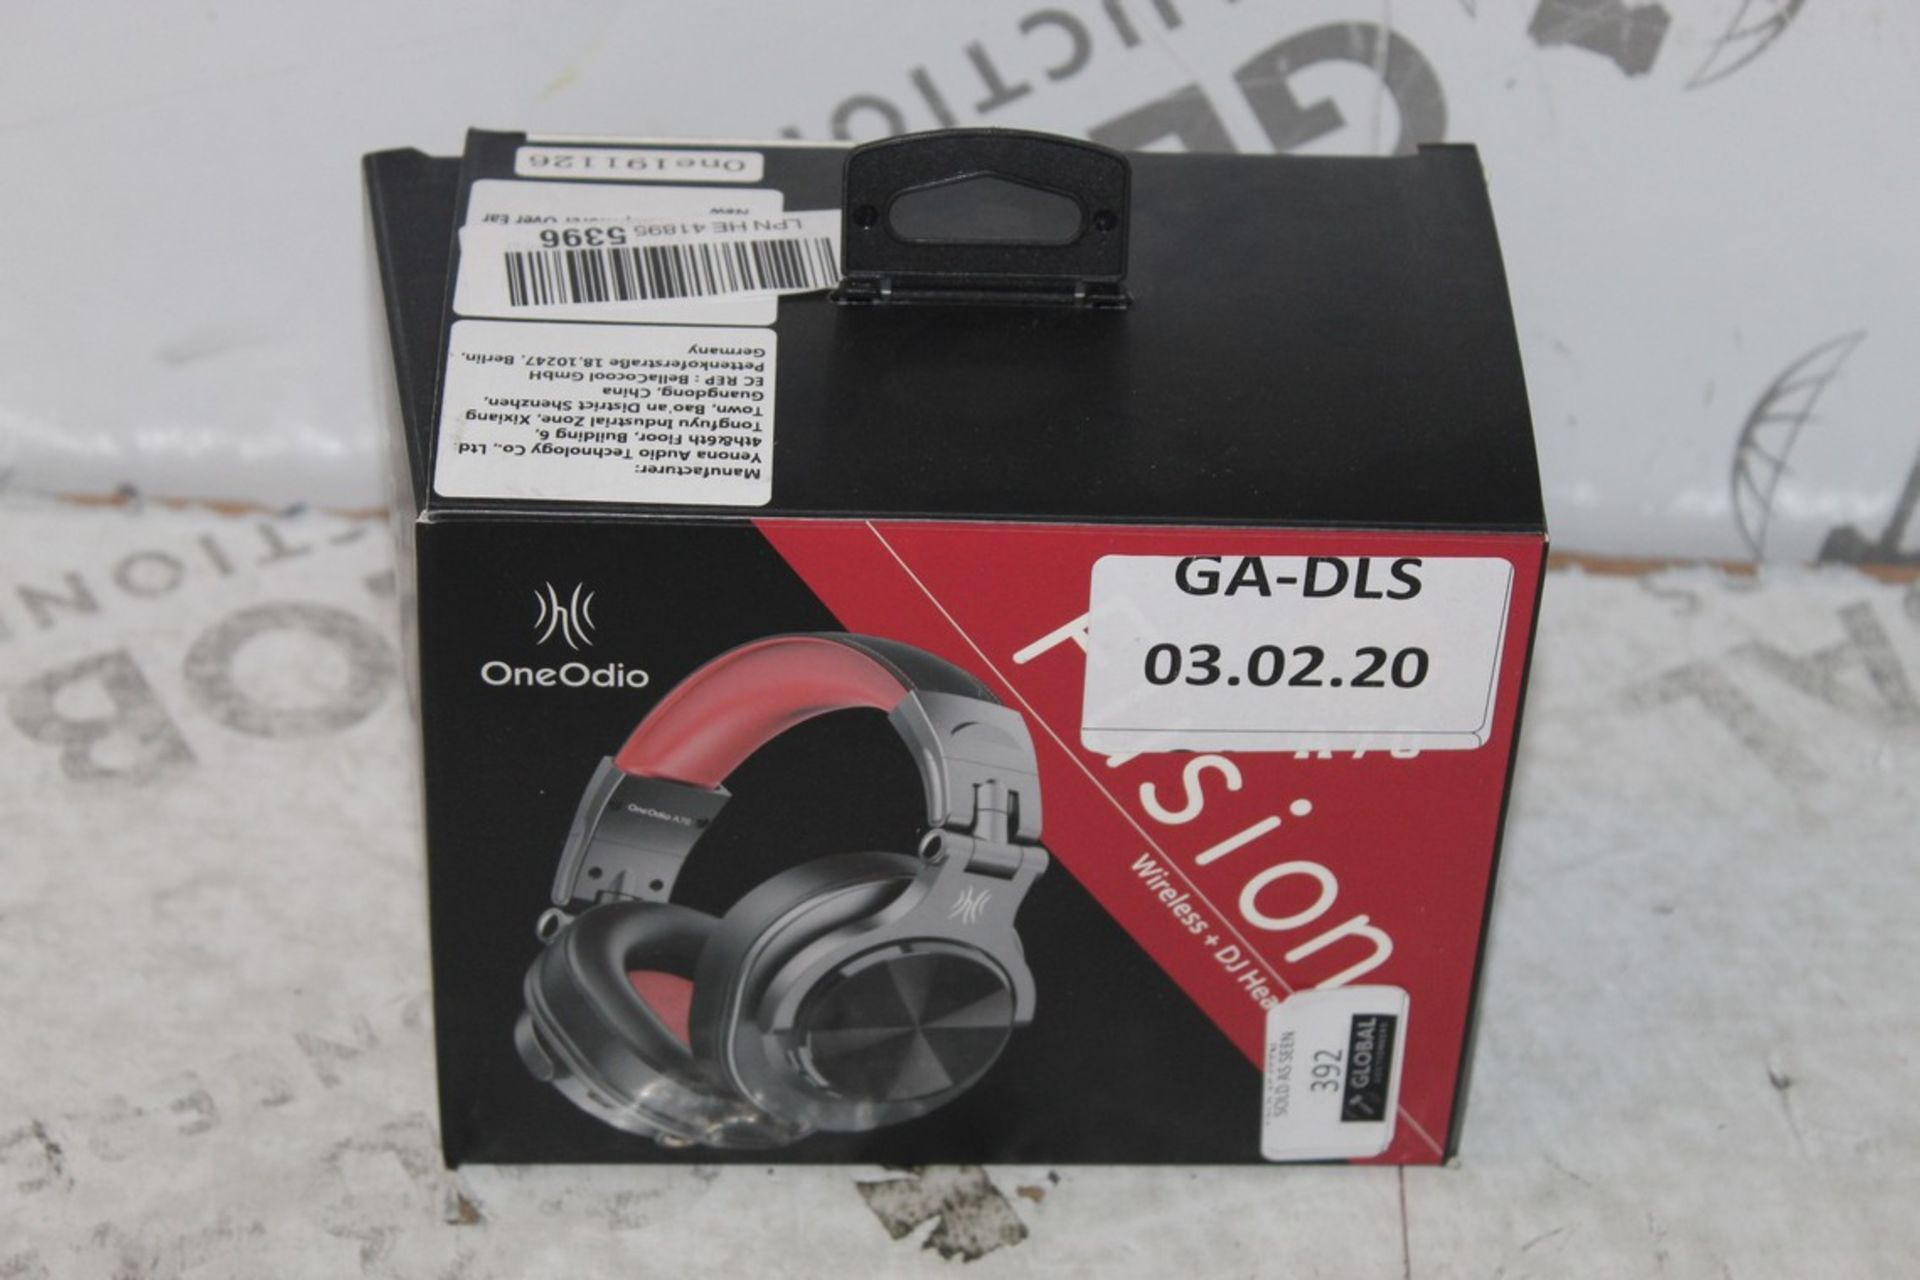 Lot 392 - Boxed Pairs of Fusion OneOdio Wireless & DJ Headphones in Red & Black RRP £35 (Appraisals